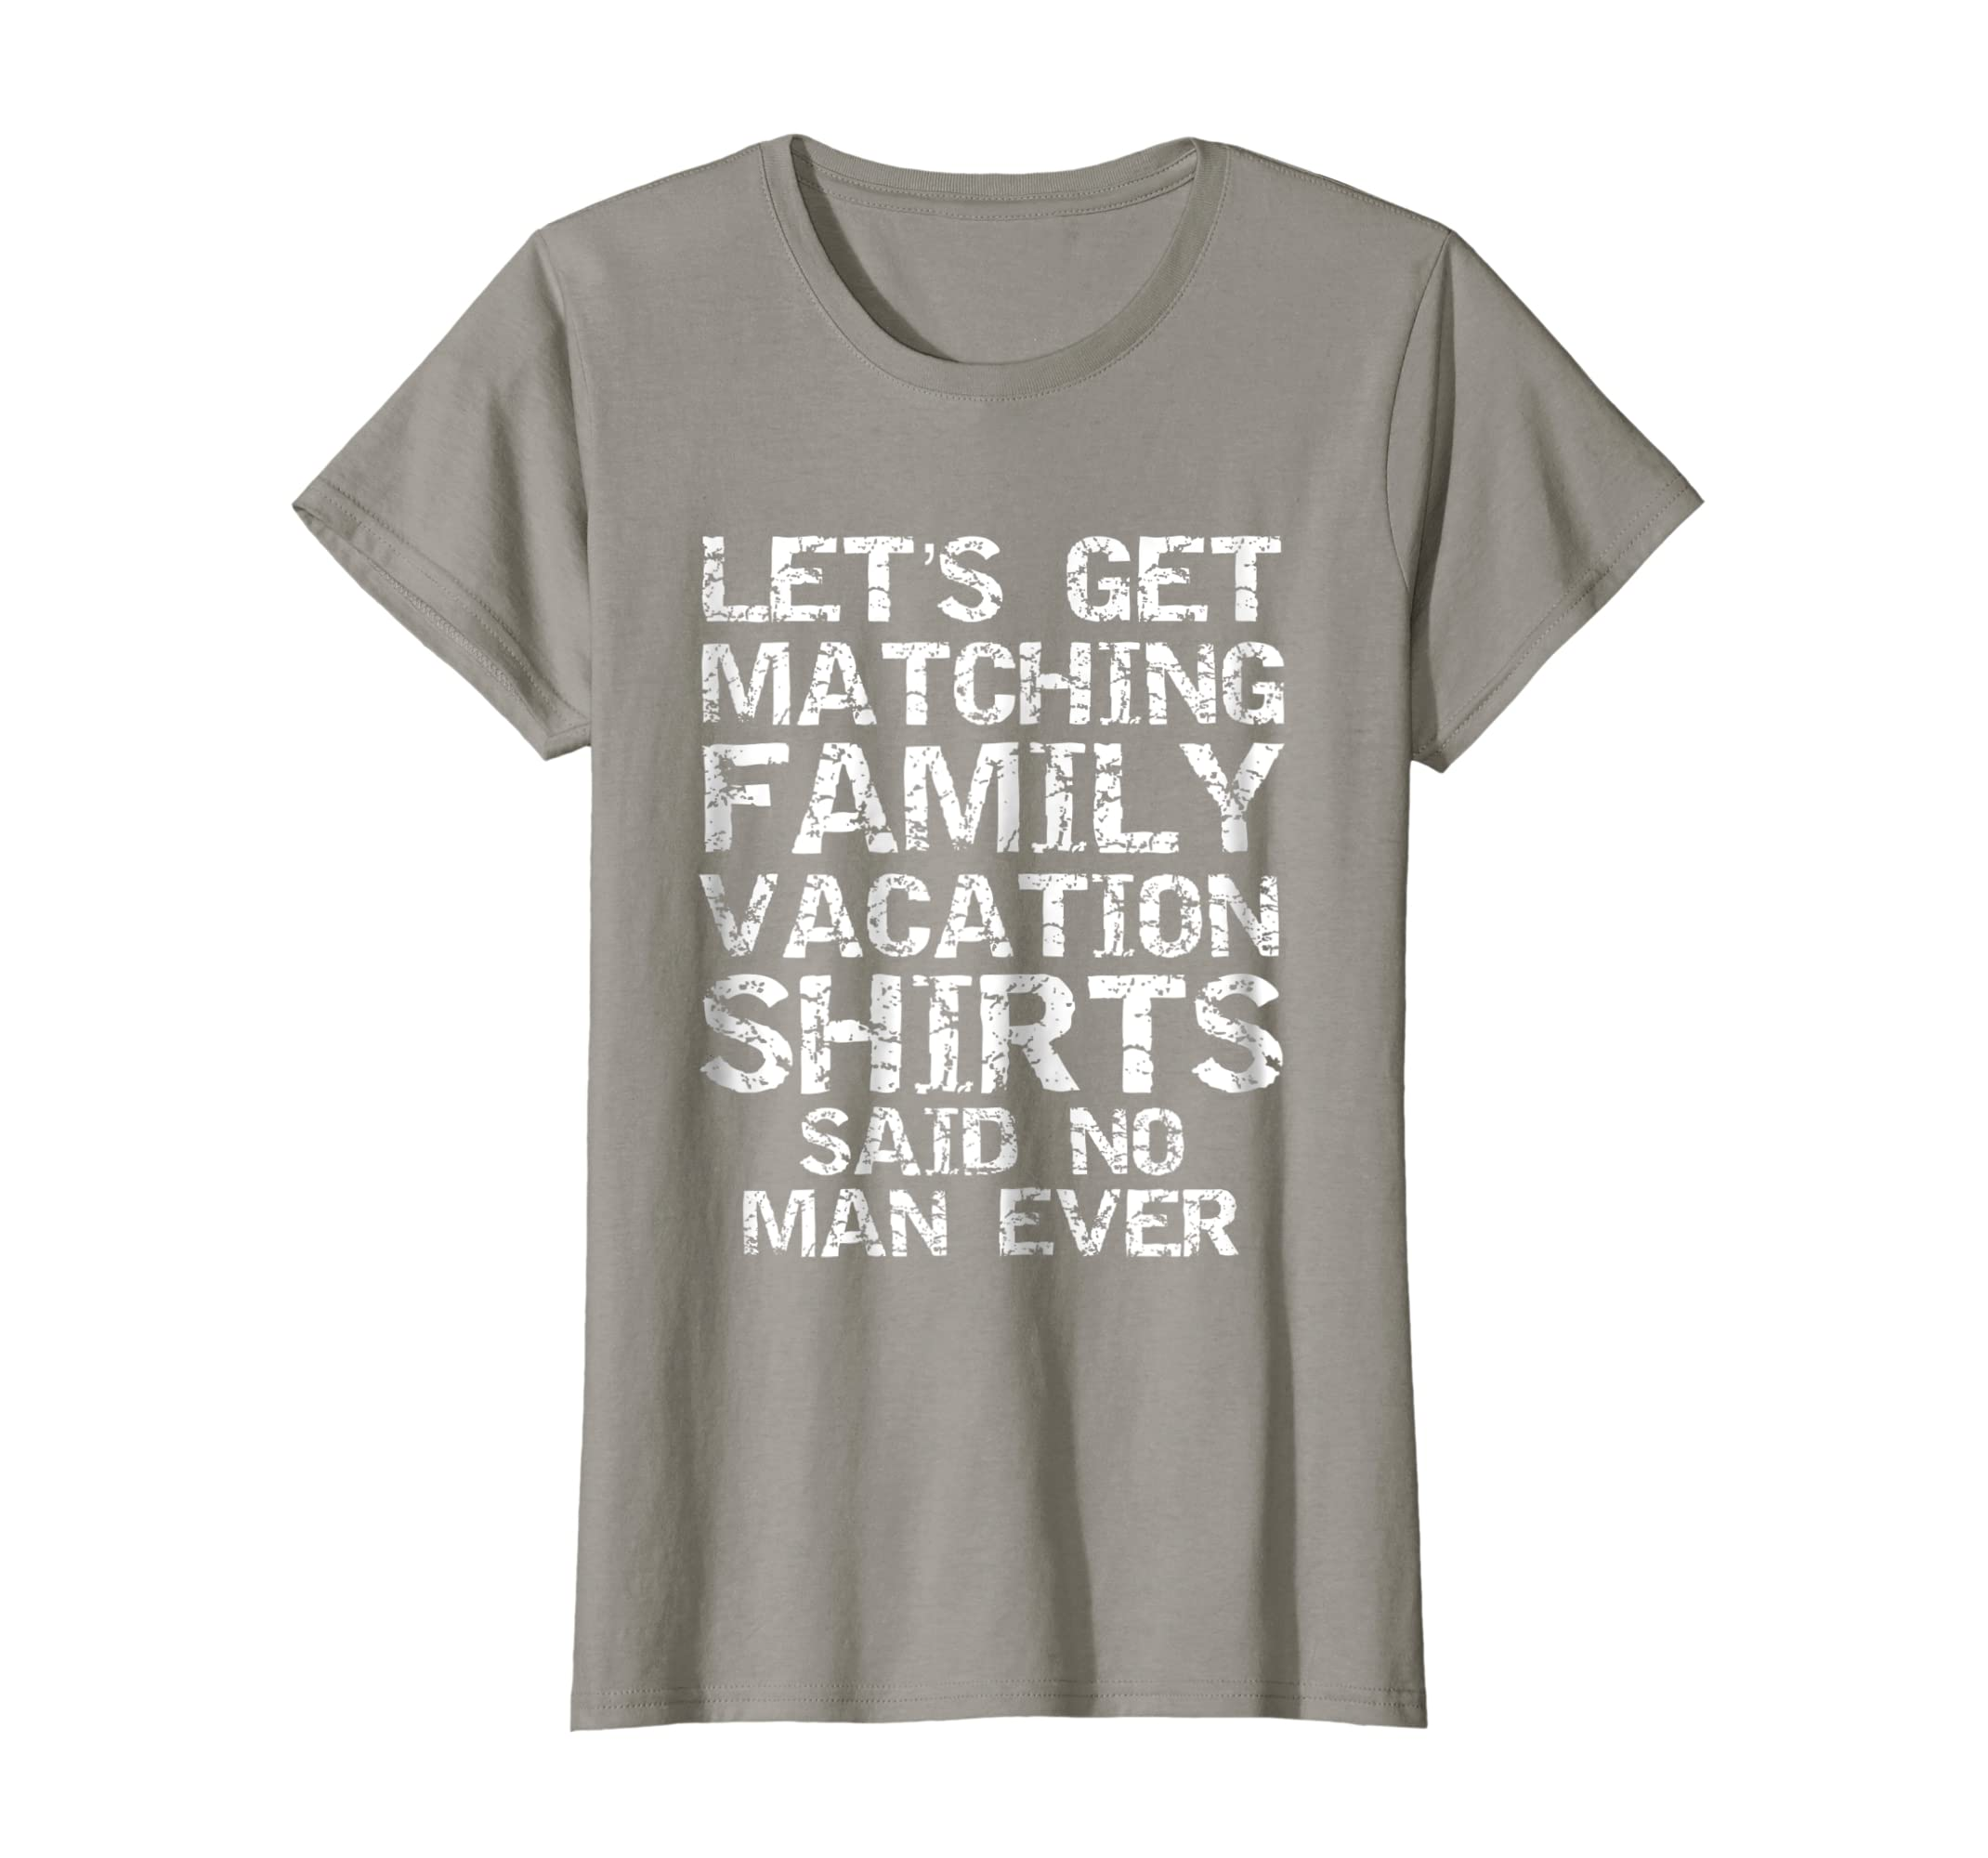 43cfa8148 Amazon.com: Let's Get Matching Family Vacation Shirts Said No Man Ever:  Clothing